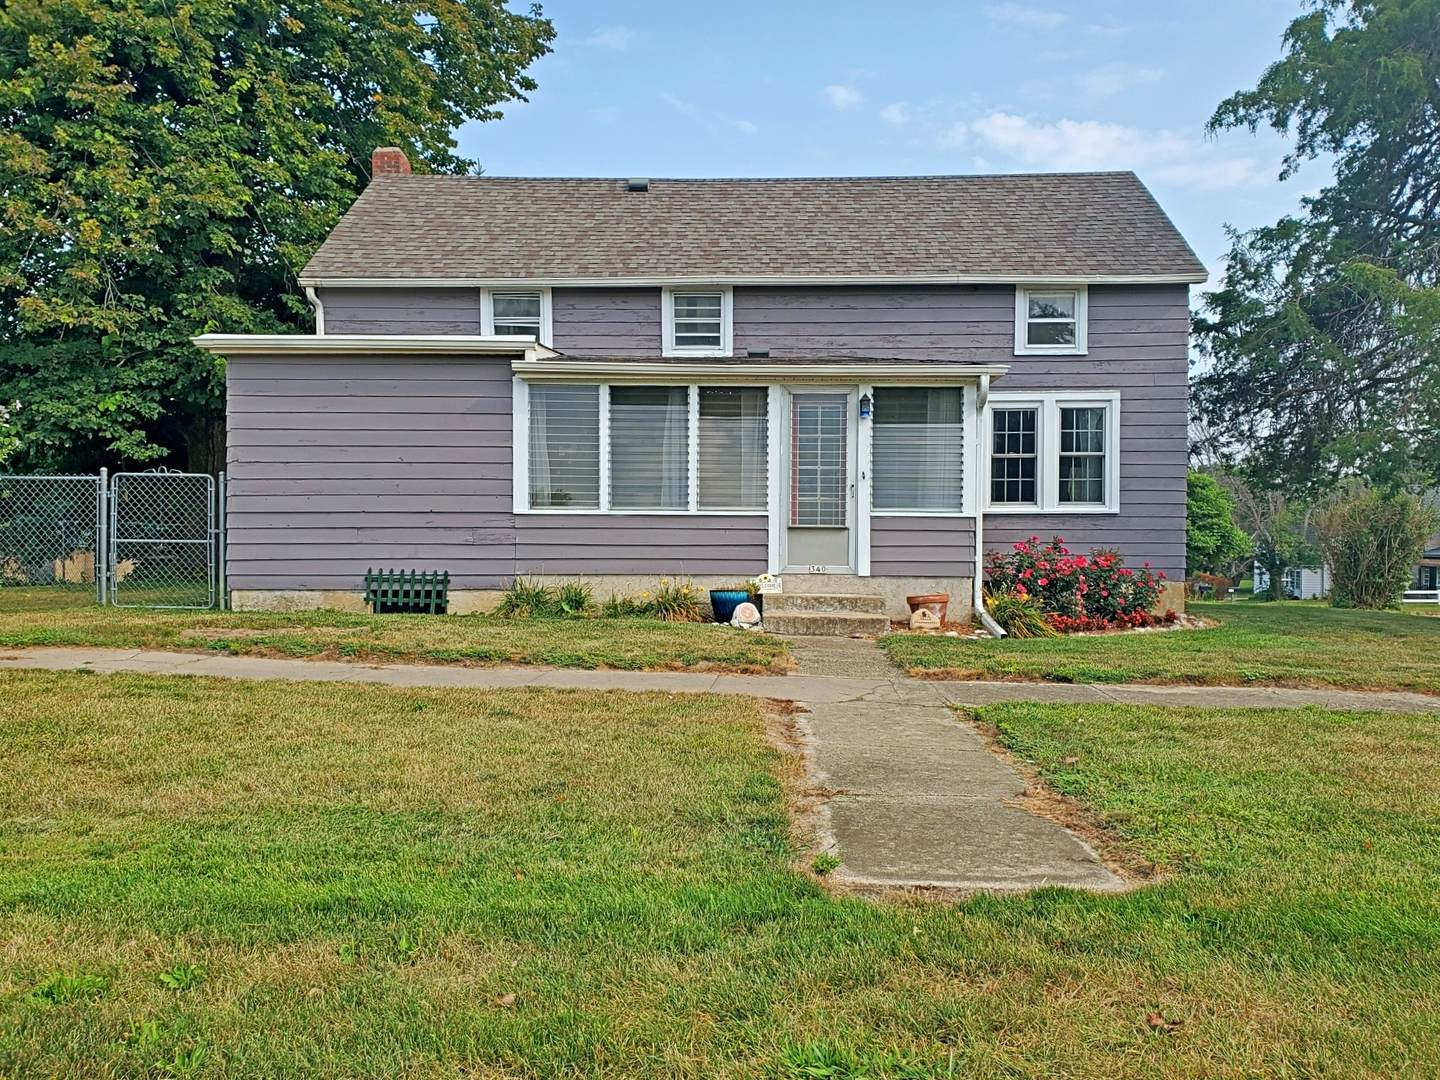 340 E Cook Street, Sheffield, IL 61361 (MLS #10830491) :: BN Homes Group